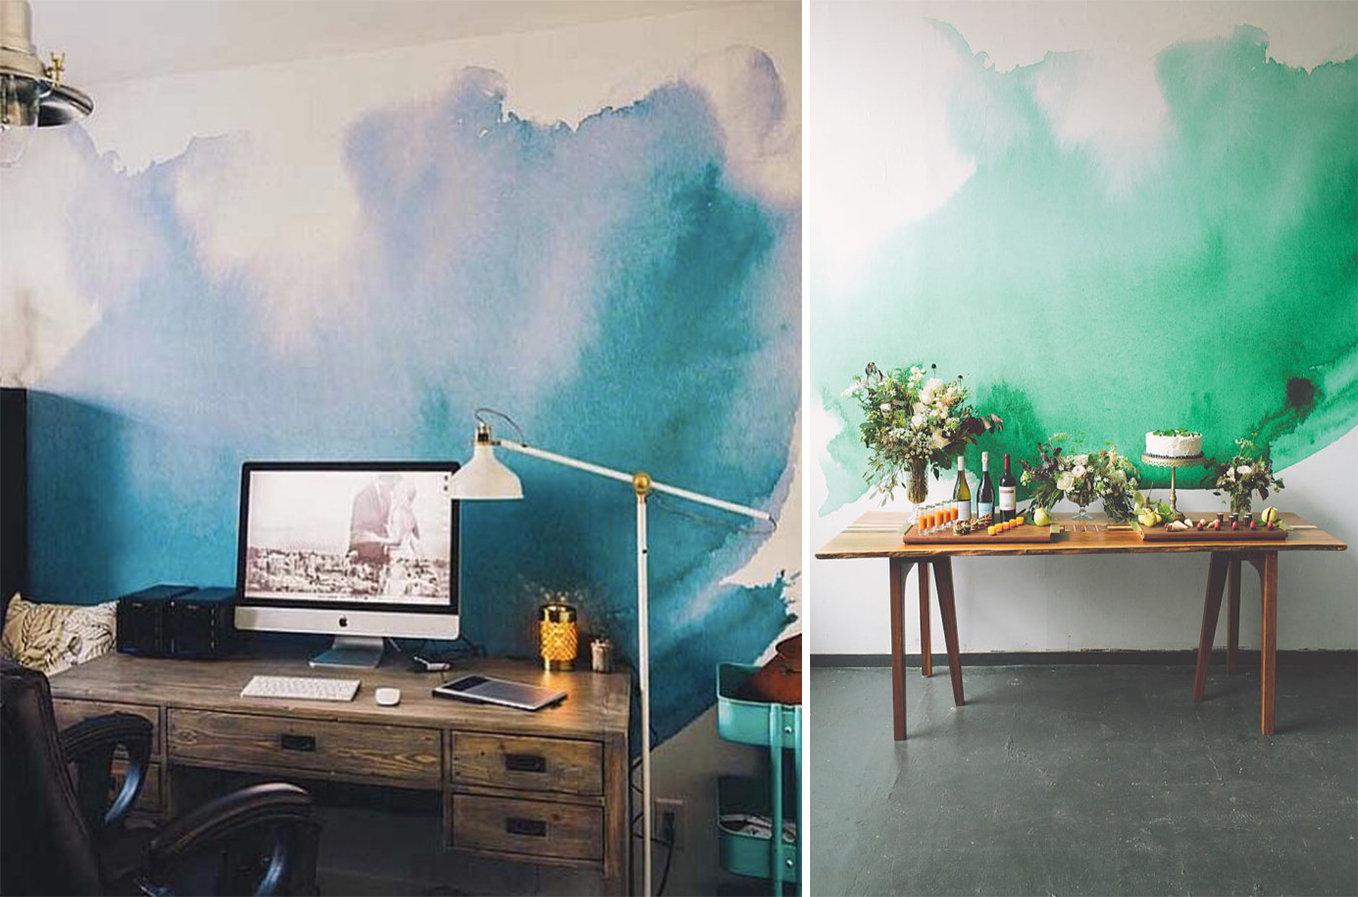 Watercolor-splash-on-the-wall